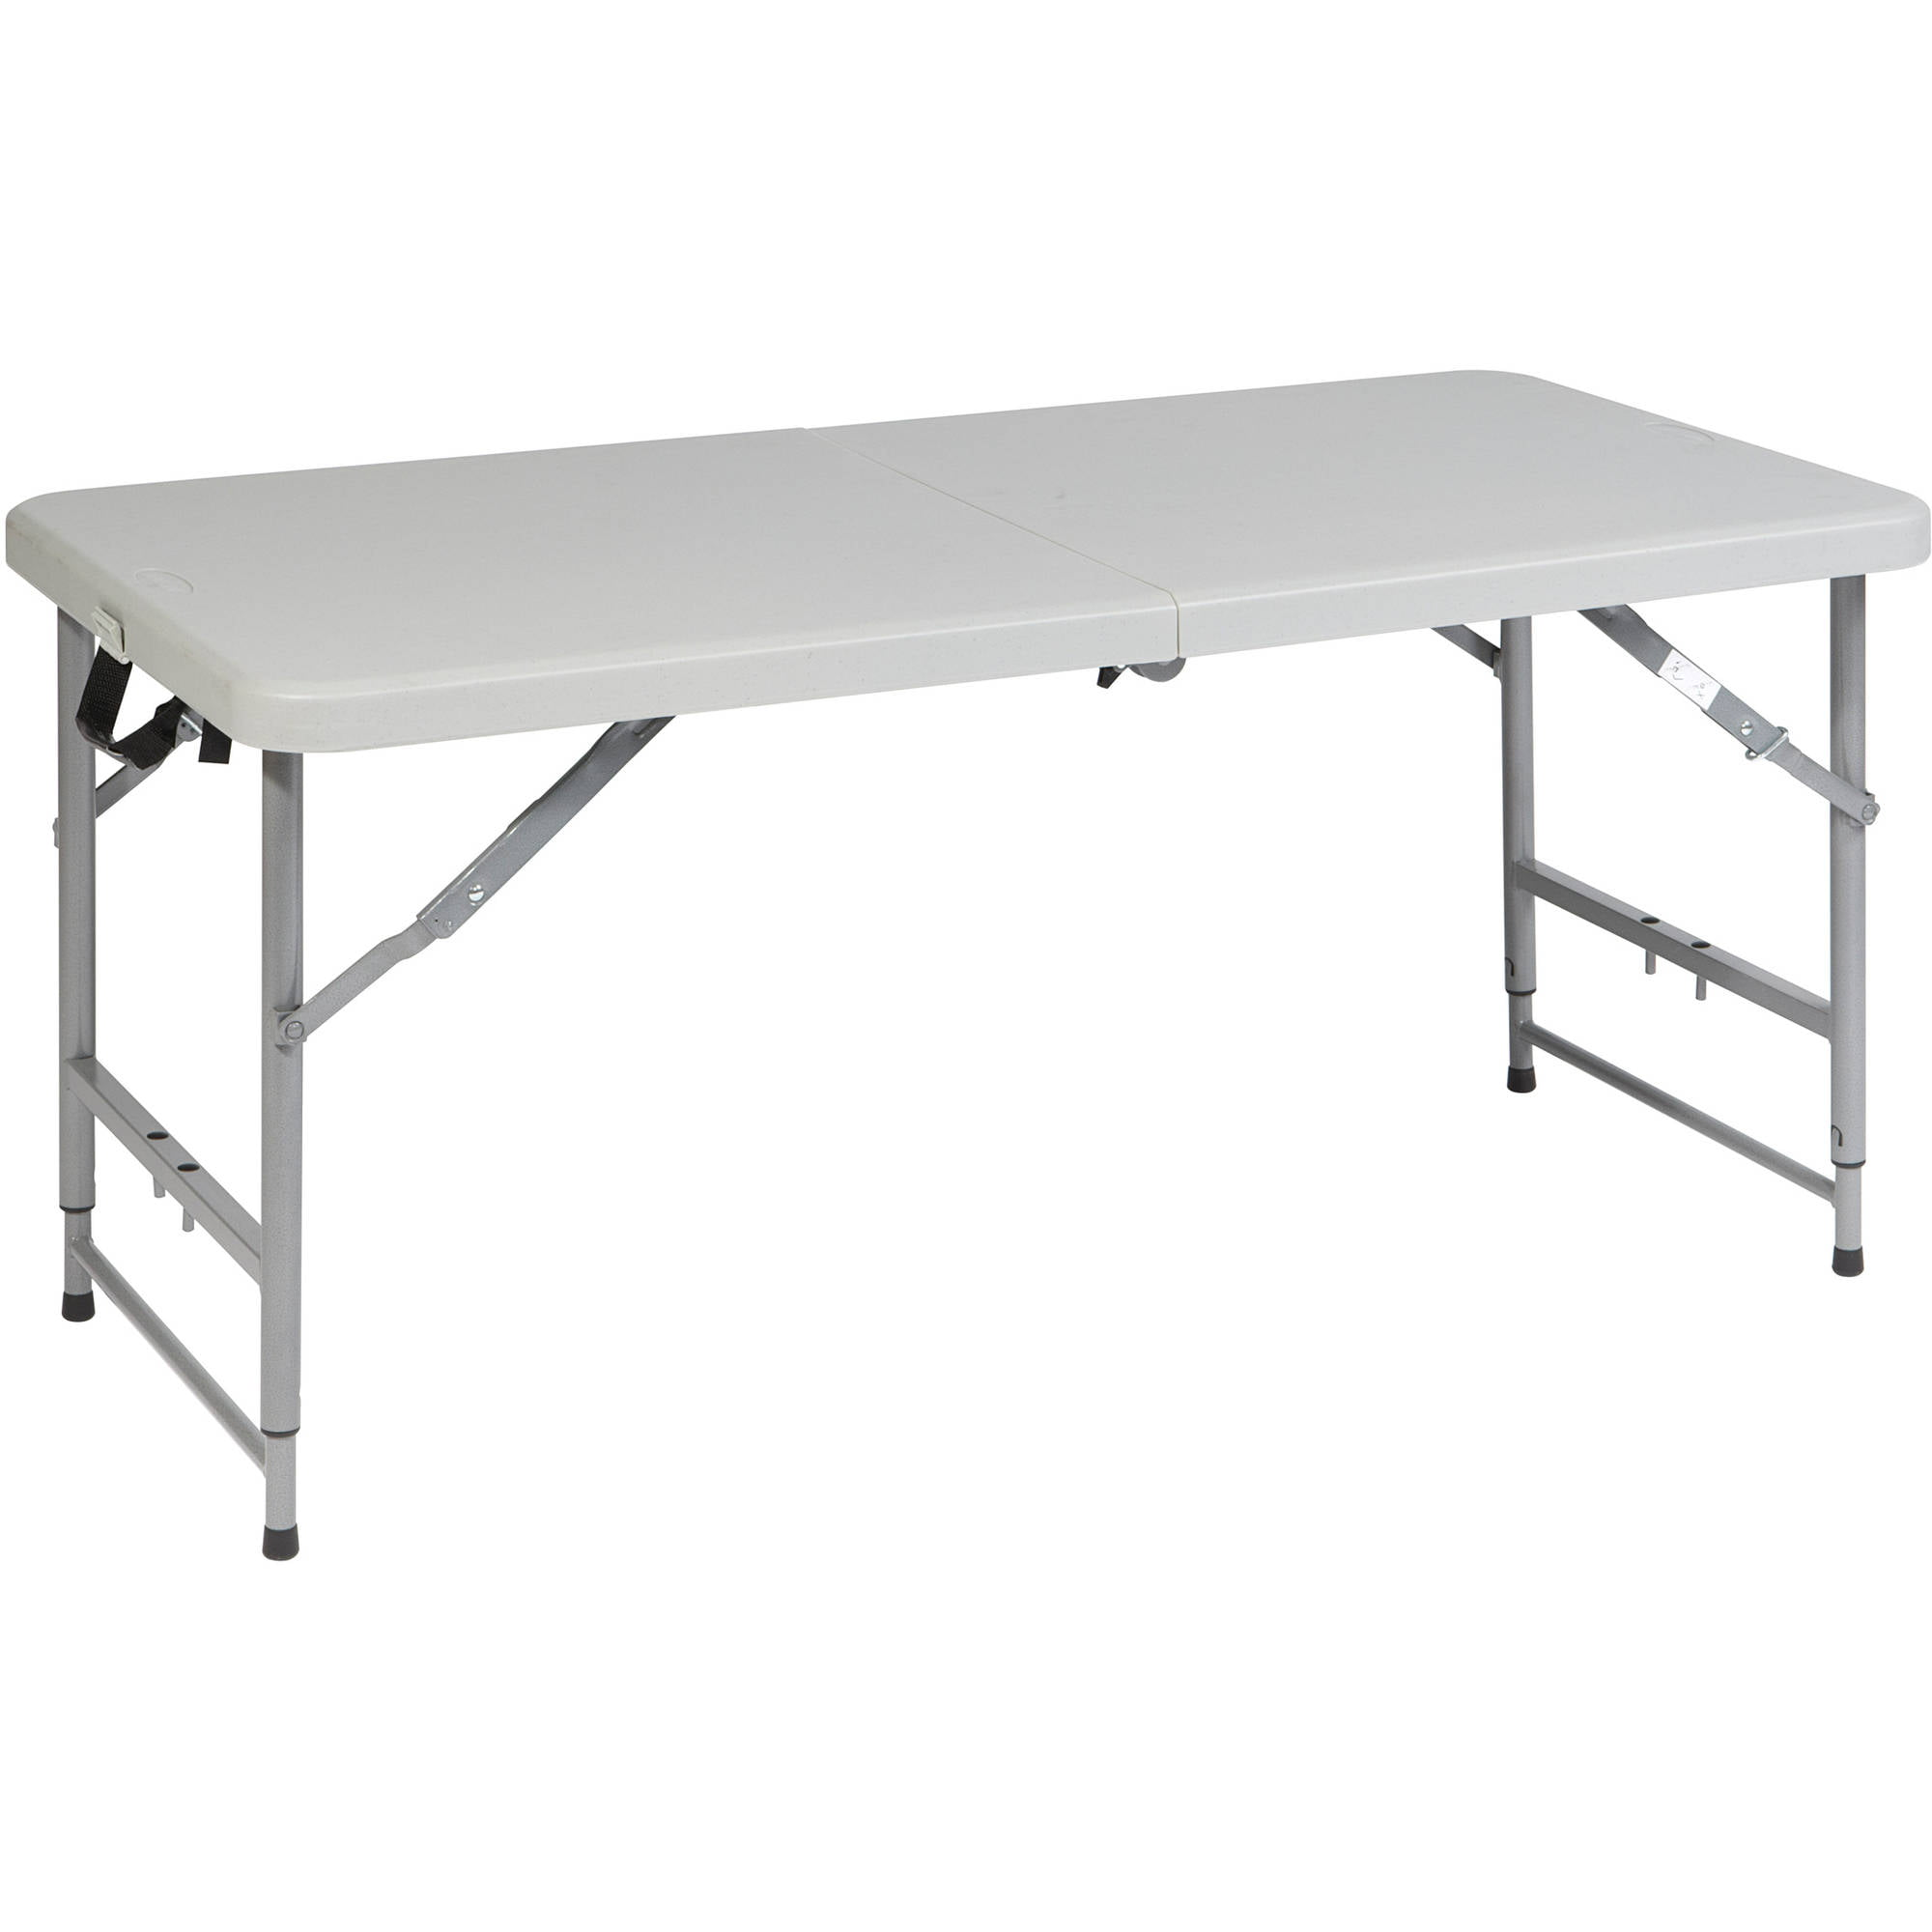 Perfect Work Smart 4u0027 Height Adjustable Fold In Half Resin Multi Purpose Table,  Light Grey   Walmart.com